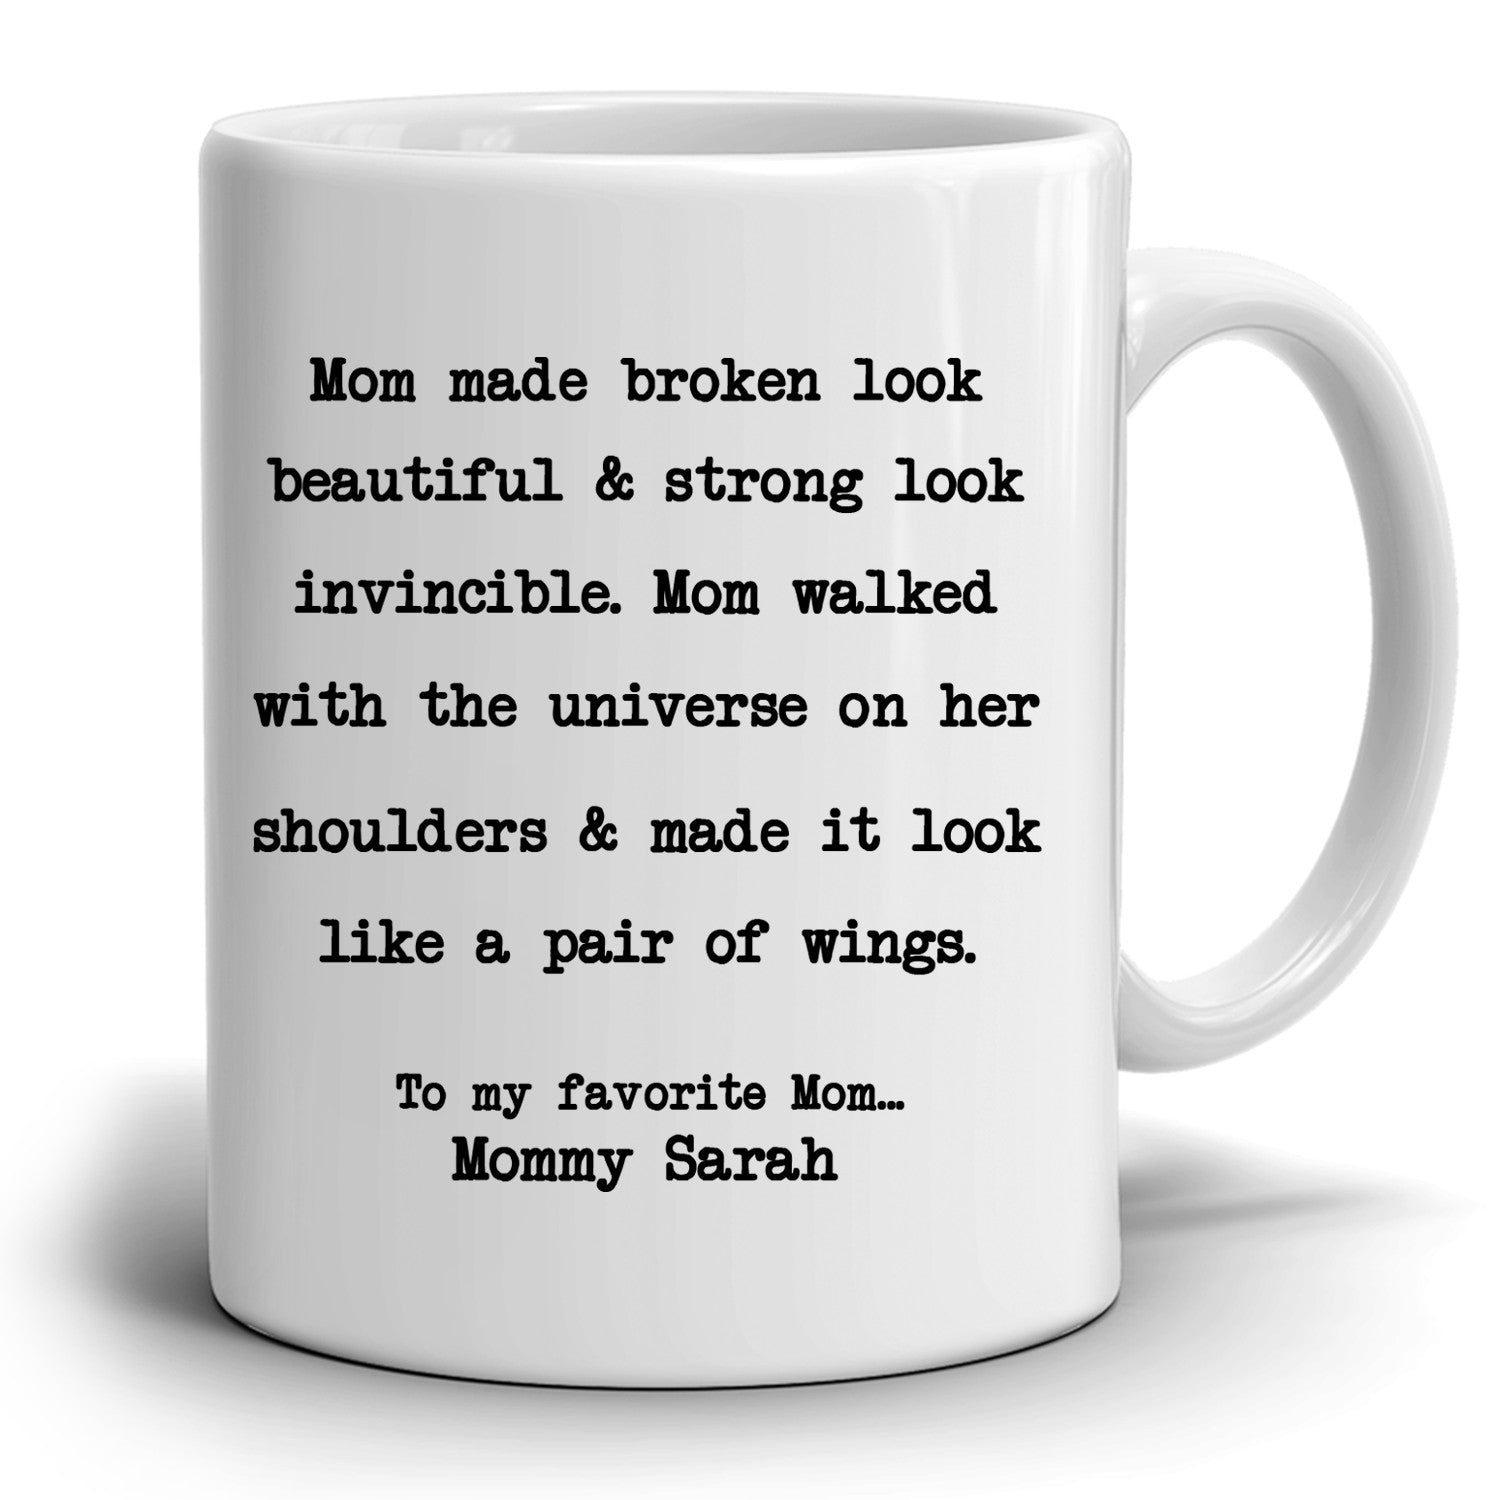 Personalized Perfect Gift For Mom From Daughter Coffee Mug Unique P Stir Crazy Gifts